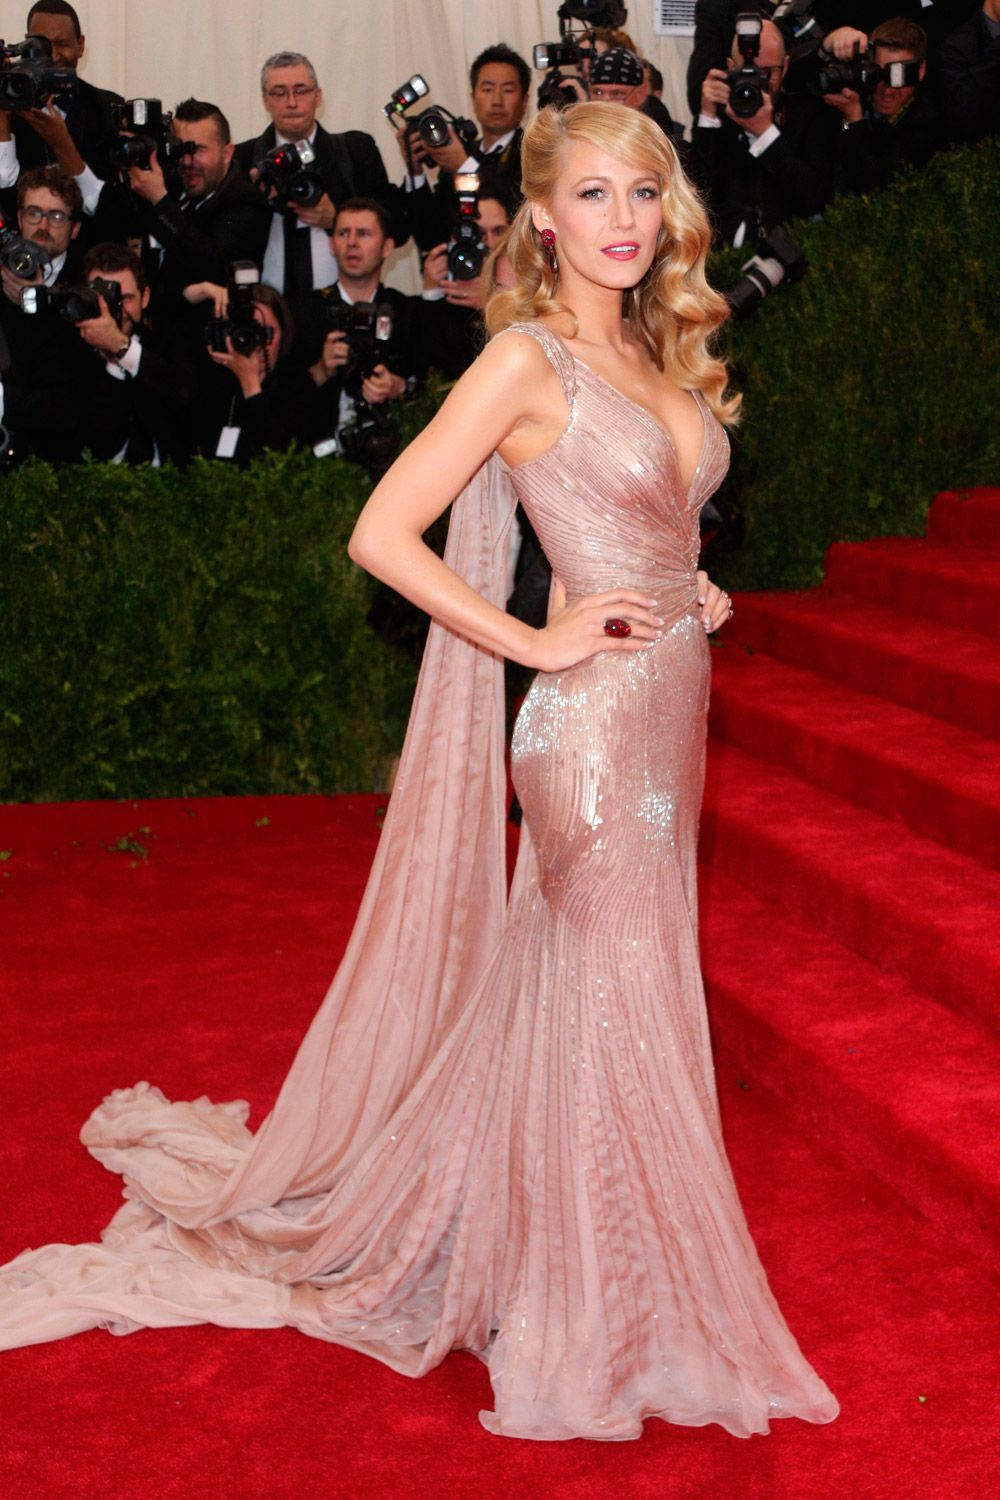 The Best Met Gala Dresses Of All Time From Rihanna To Claire Danes ...